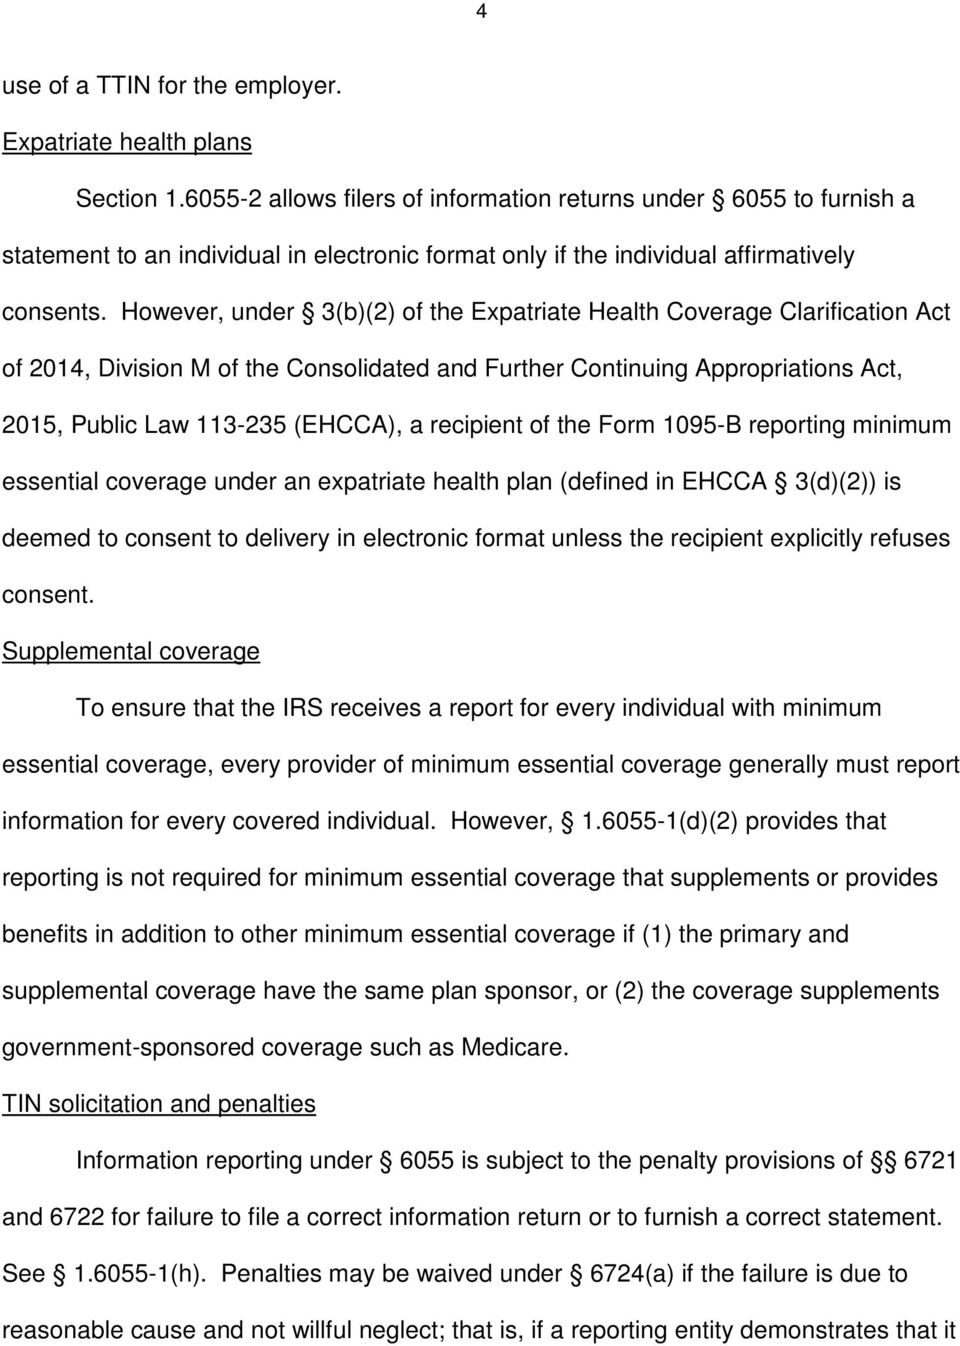 However, under 3(b)(2) of the Expatriate Health Coverage Clarification Act of 2014, Division M of the Consolidated and Further Continuing Appropriations Act, 2015, Public Law 113-235 (EHCCA), a